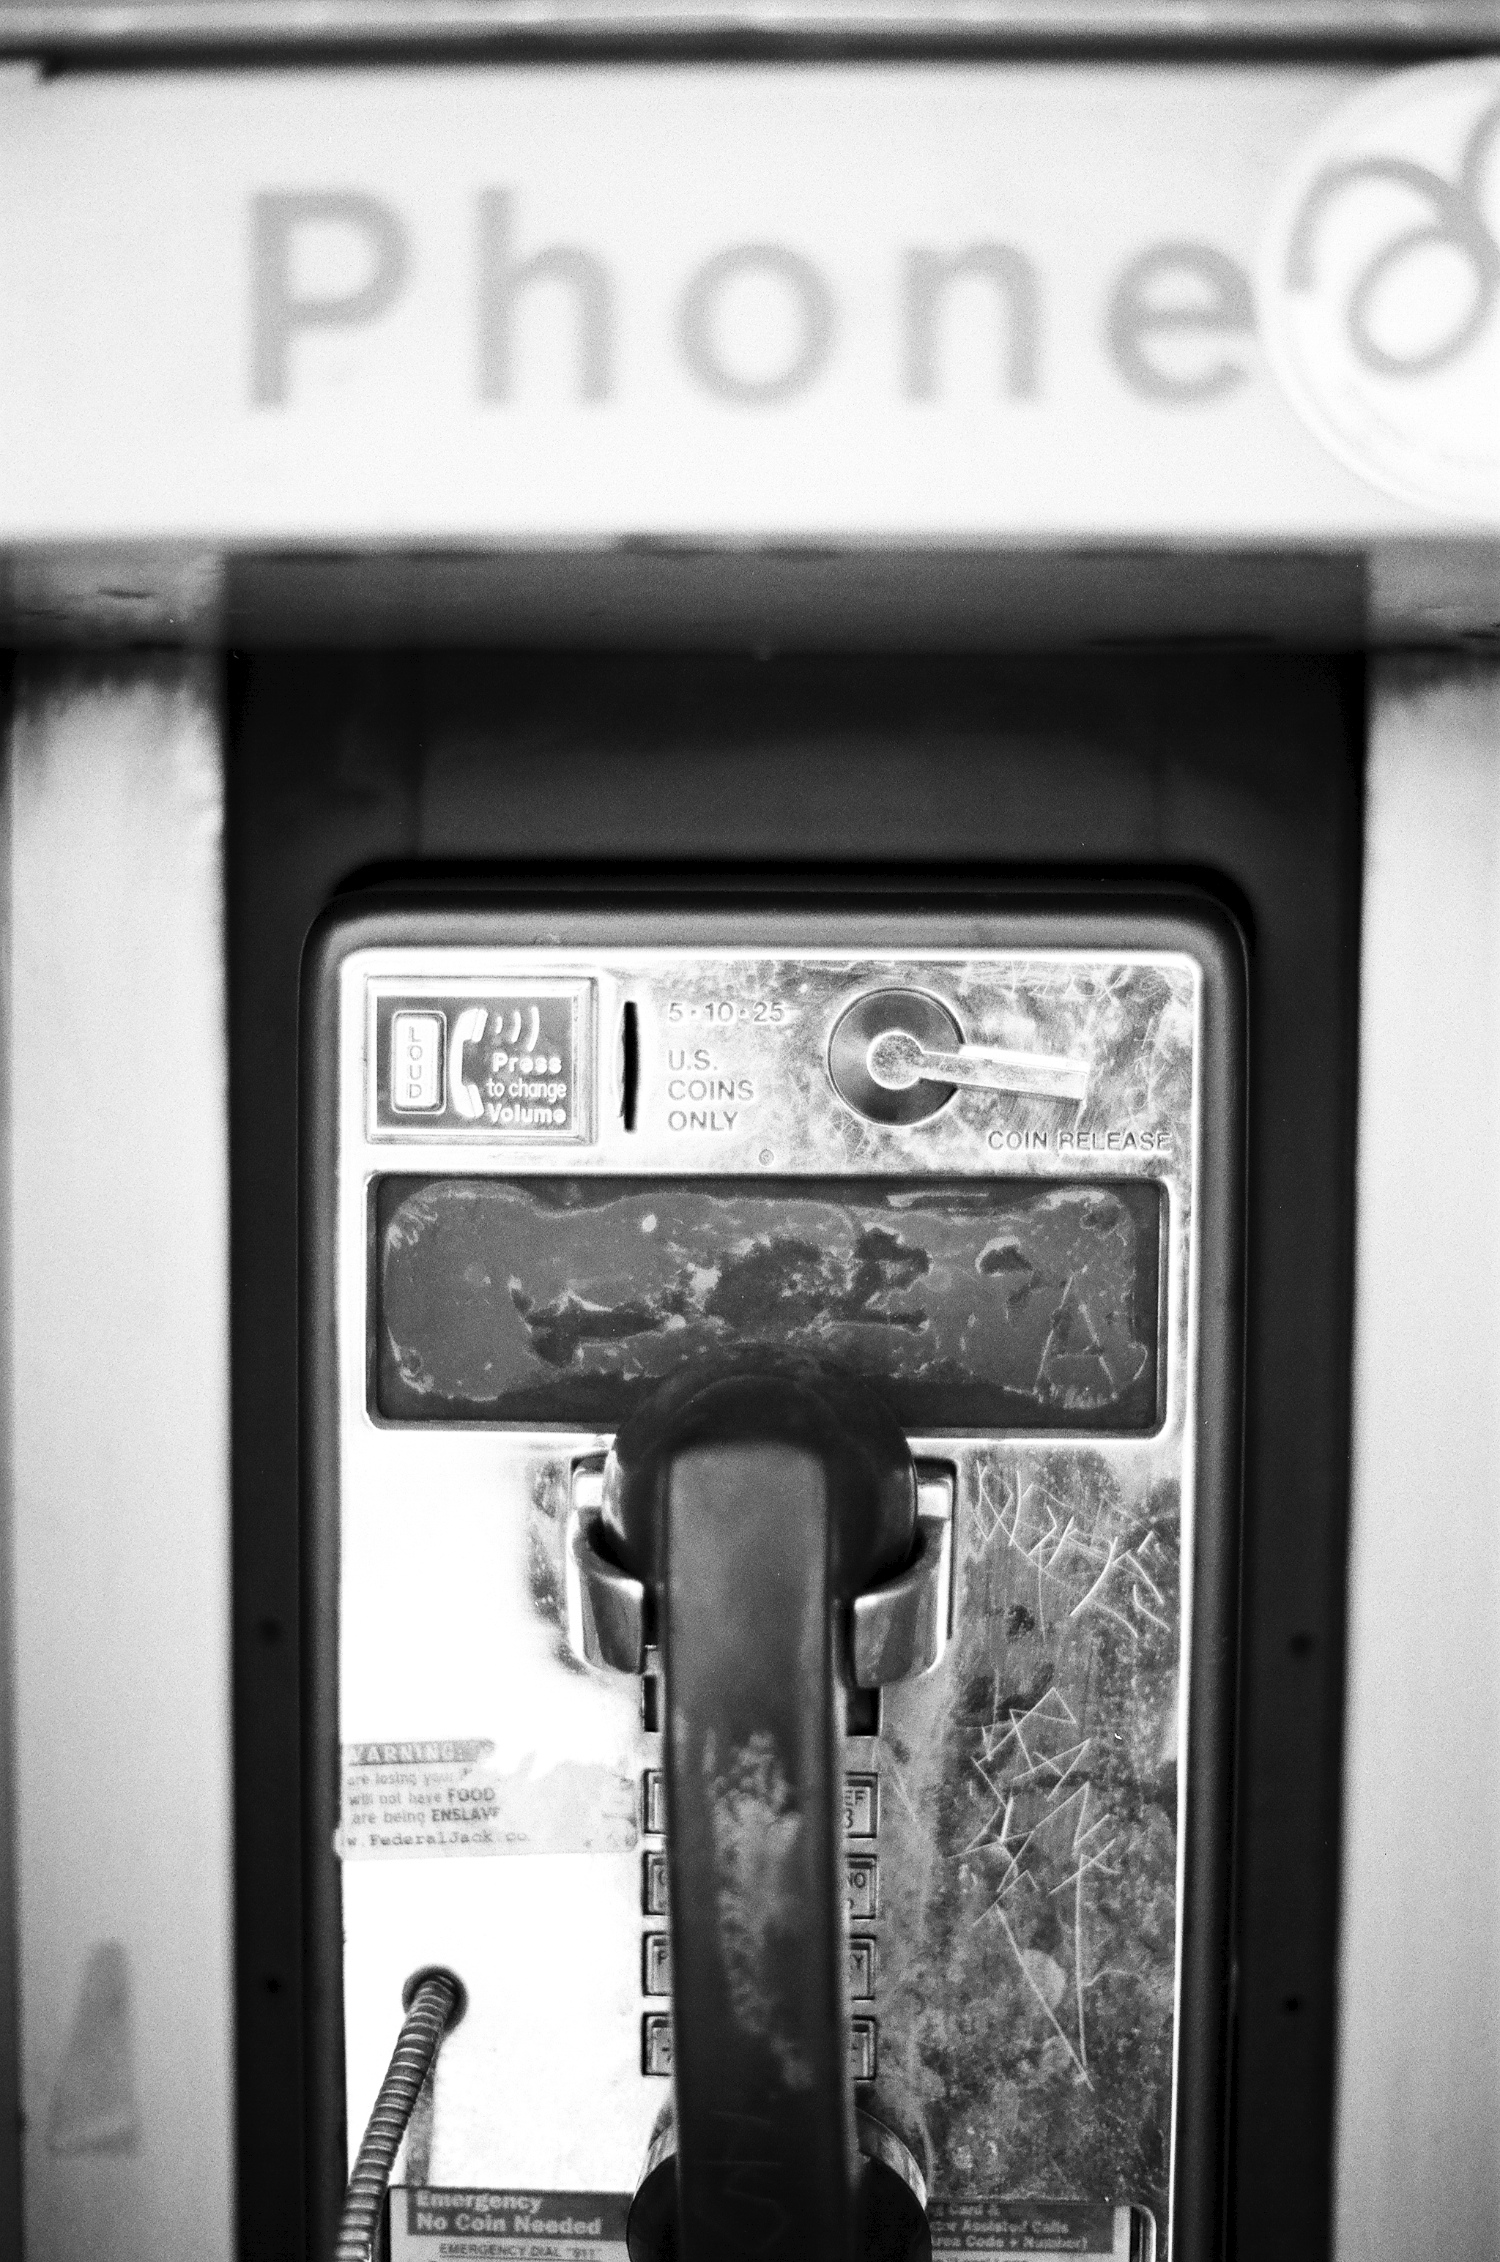 Old telephone in Phx downtown